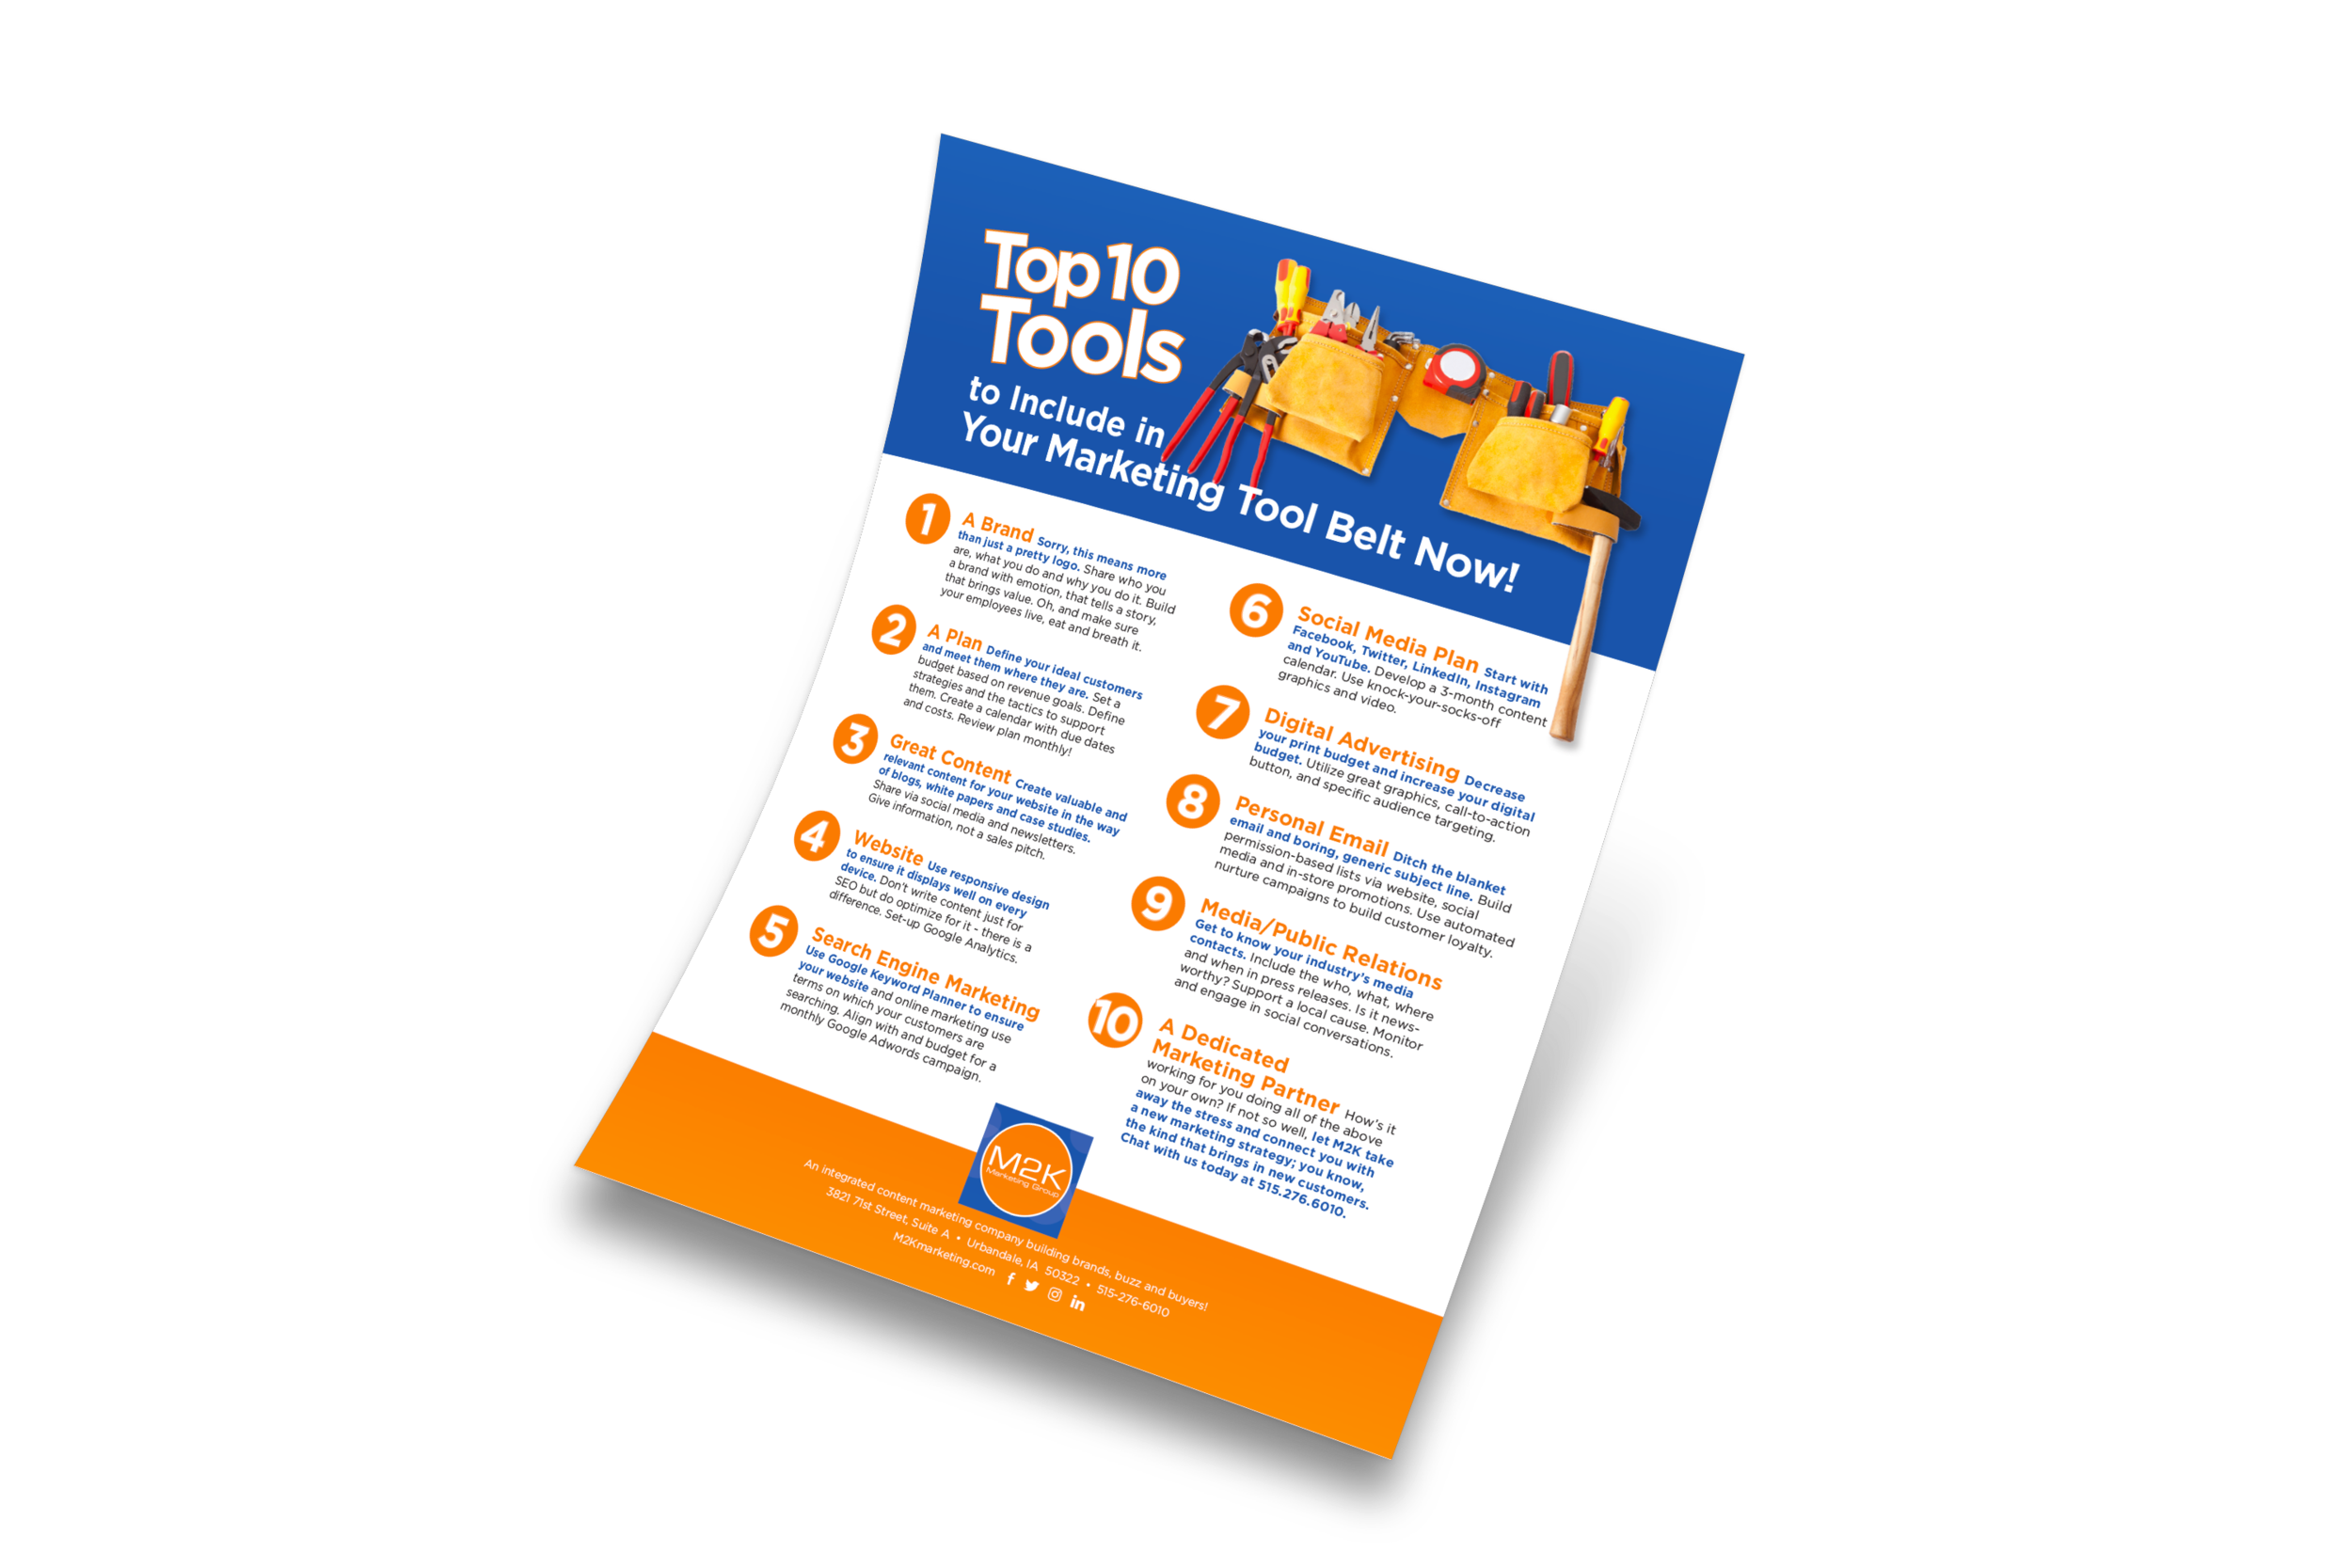 Free Download! - Complete the form below to receive our Top Ten Tools for Your 2019 Marketing Tool Belt.